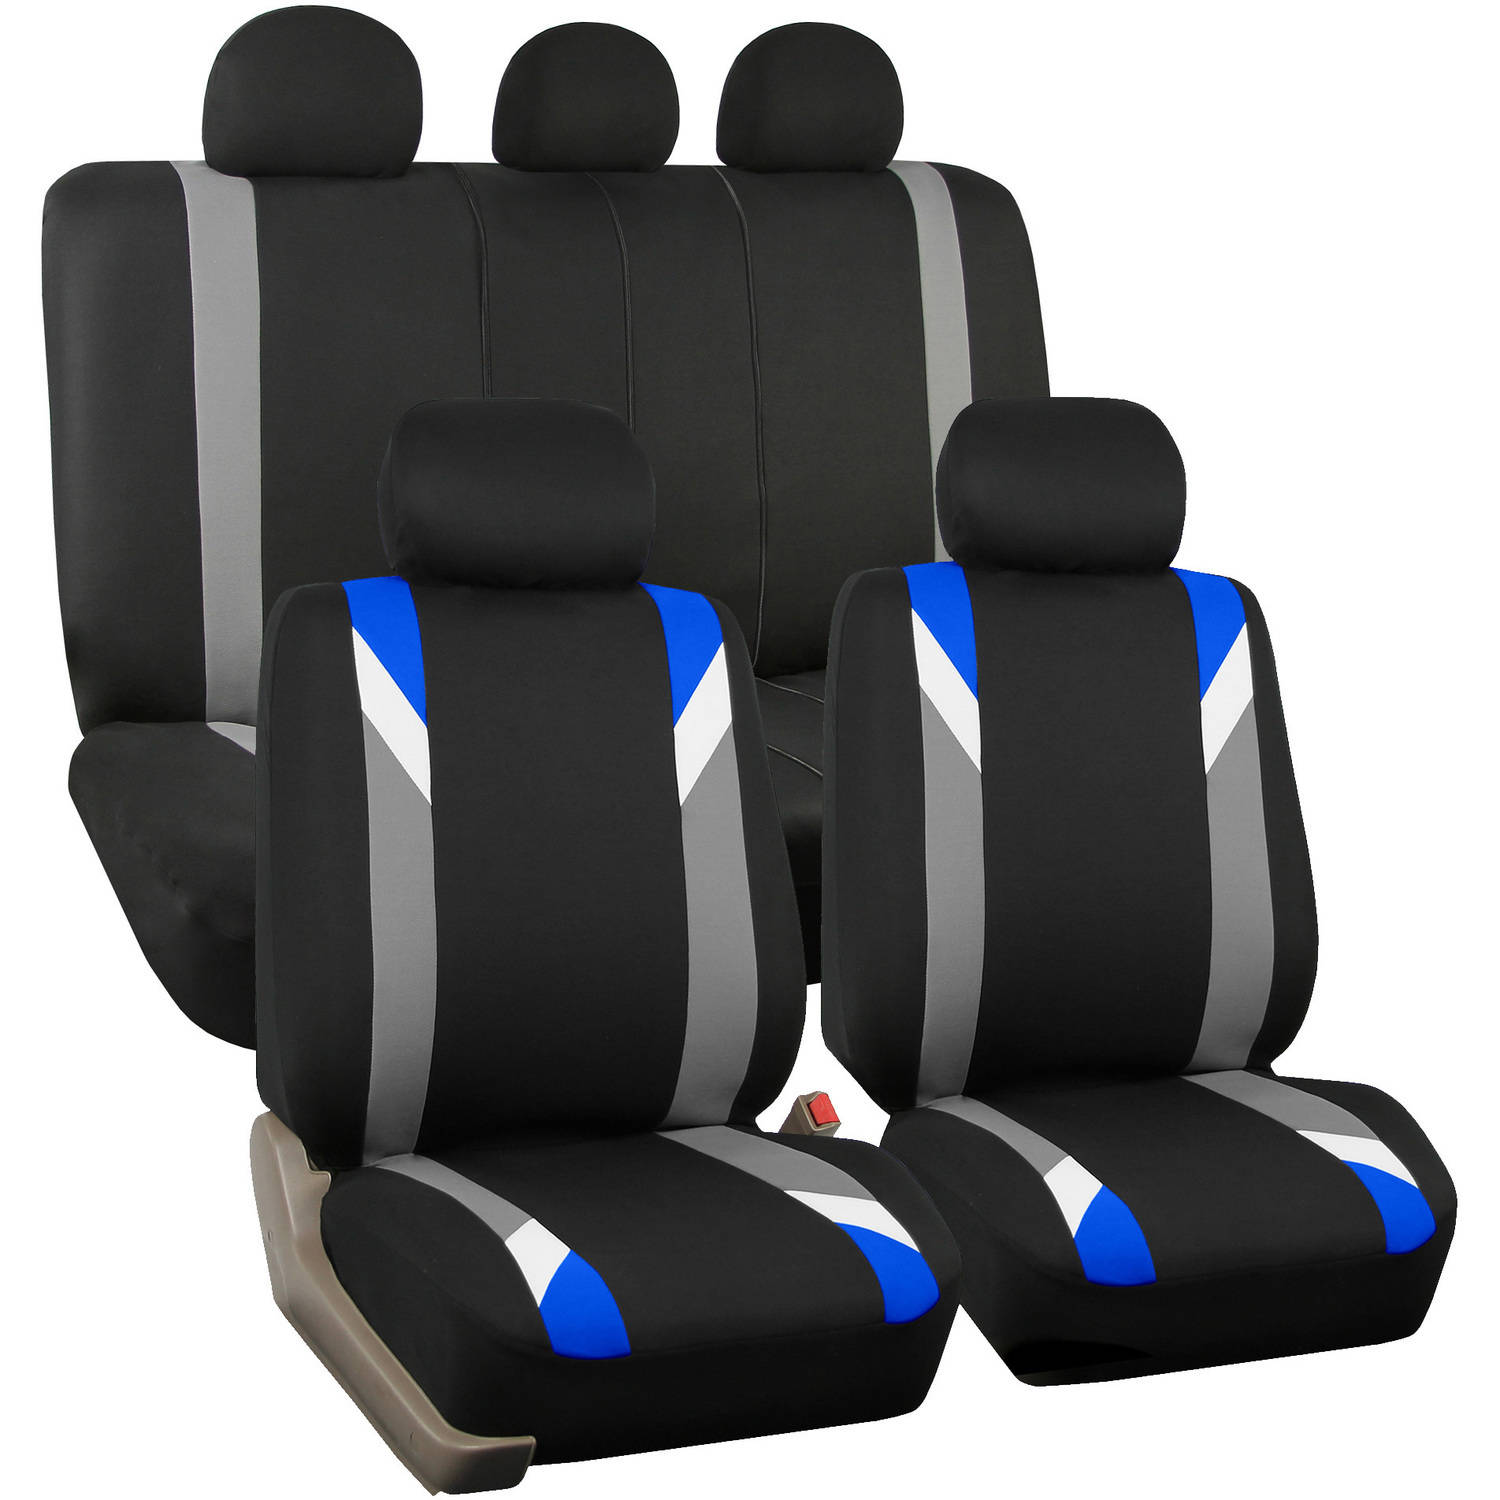 FH Group Airbag Compatible Modernistic Flat Cloth Full Set Seat Covers, Blue